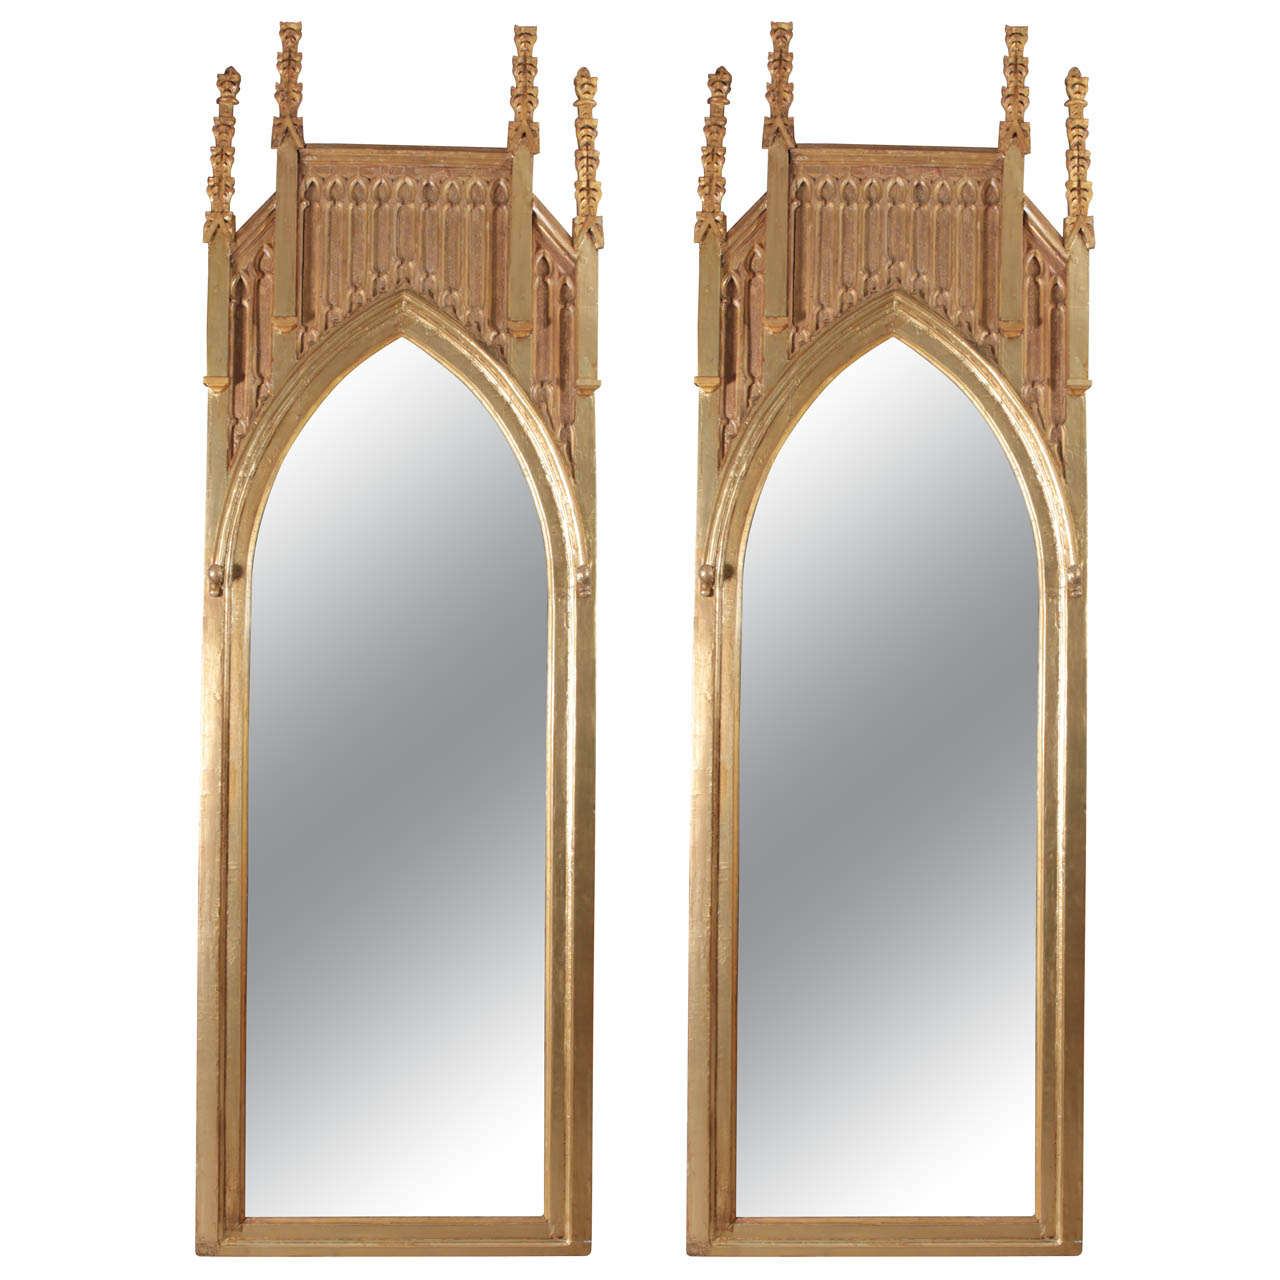 Pair of gothic revival giltwood mirrors for sale at 1stdibs for Floor length mirror for sale